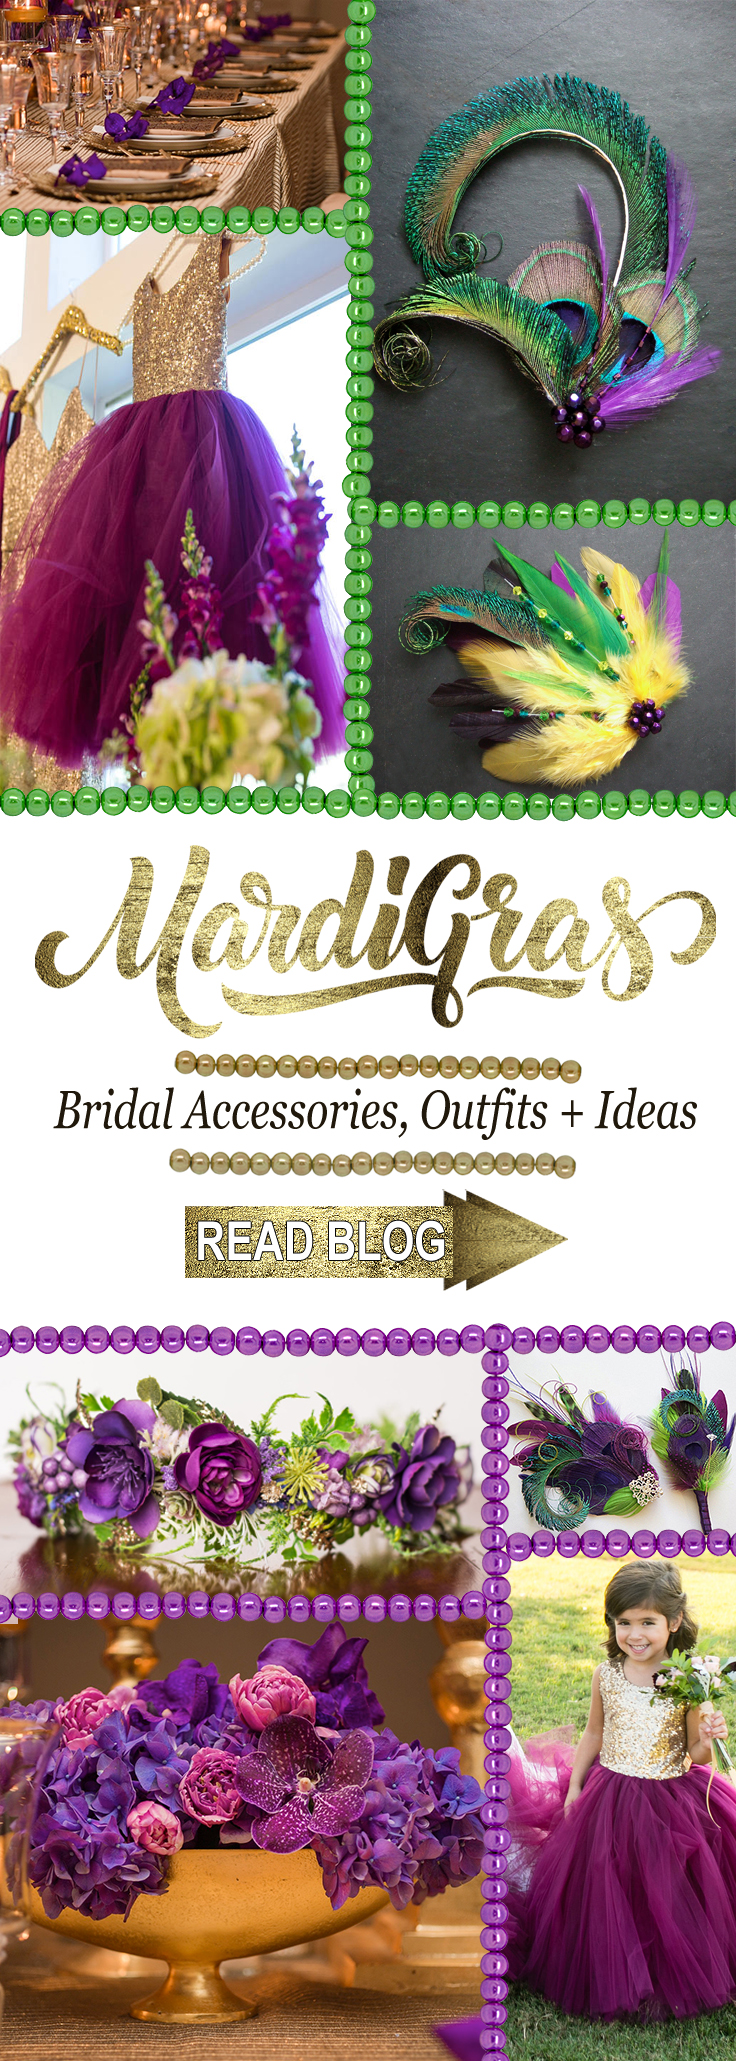 Mardi Gras Outfits, Getting Married During Mardi Gras, Mardi Gras Wedding Outfits, Mardi Gras Themed Wedding Ideas, Mardi Gras Bridesmaids, Flower Girl Outfits for Mardi Gras Wedding